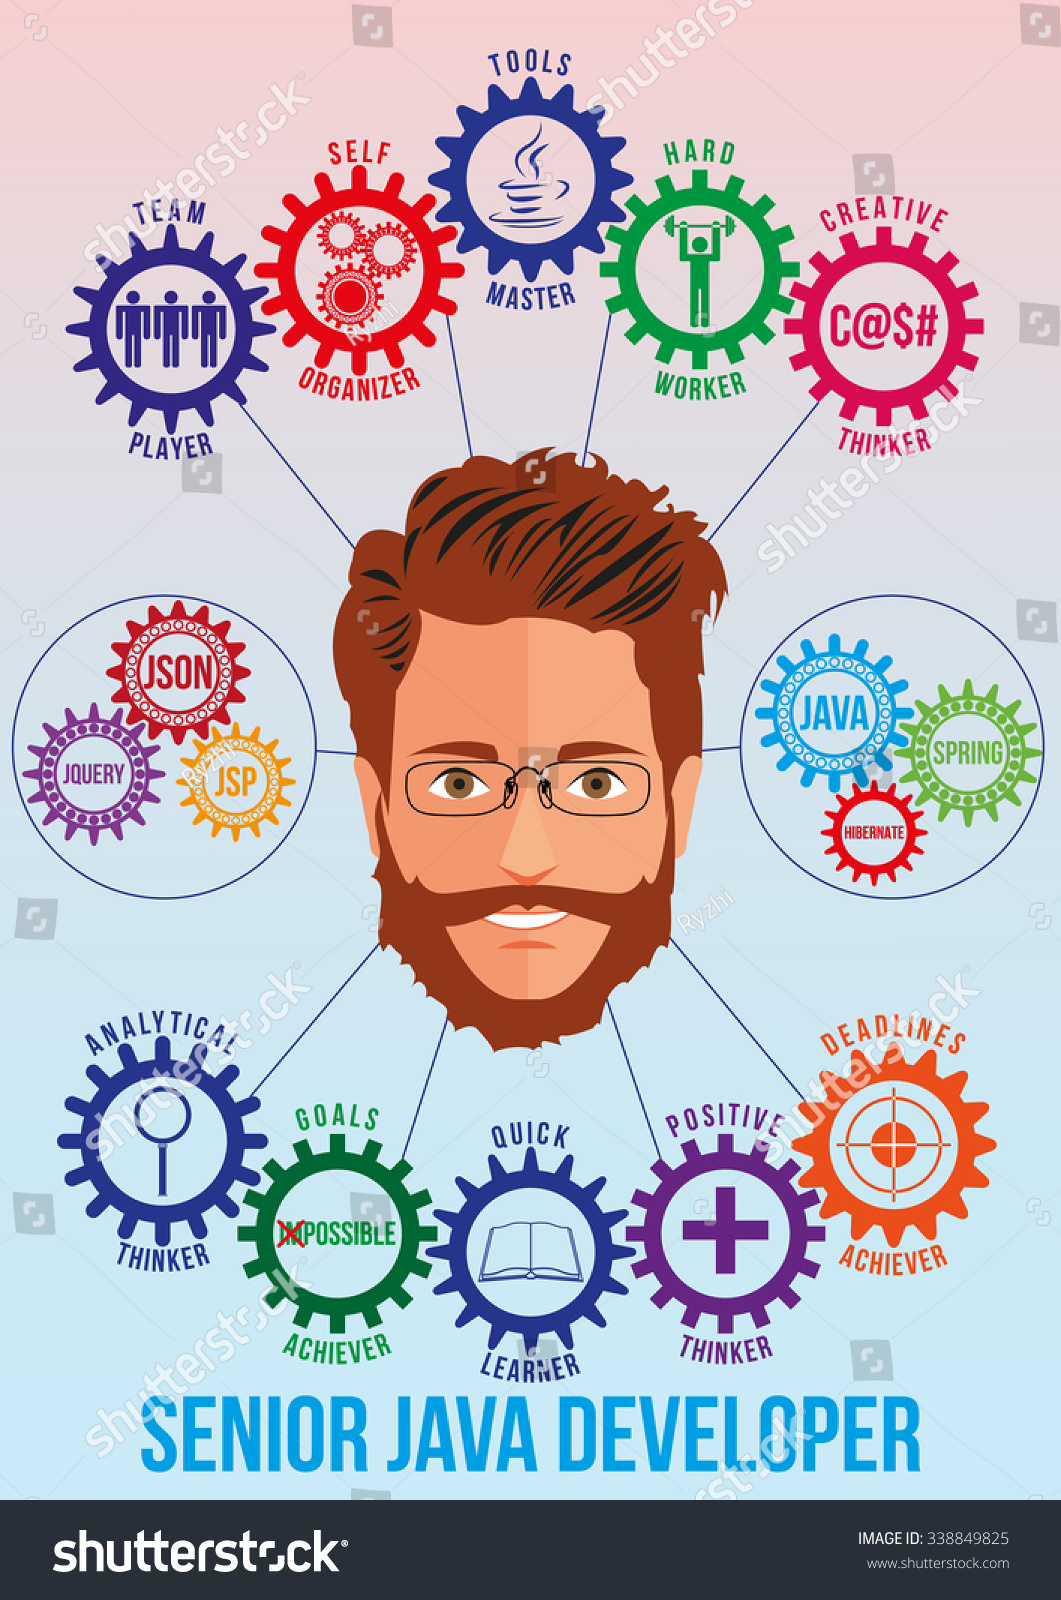 senior java developer picture tech stack stock vector 338849825 senior java developer picture tech stack and employee traits as interconnected colored gears symbolizing ability